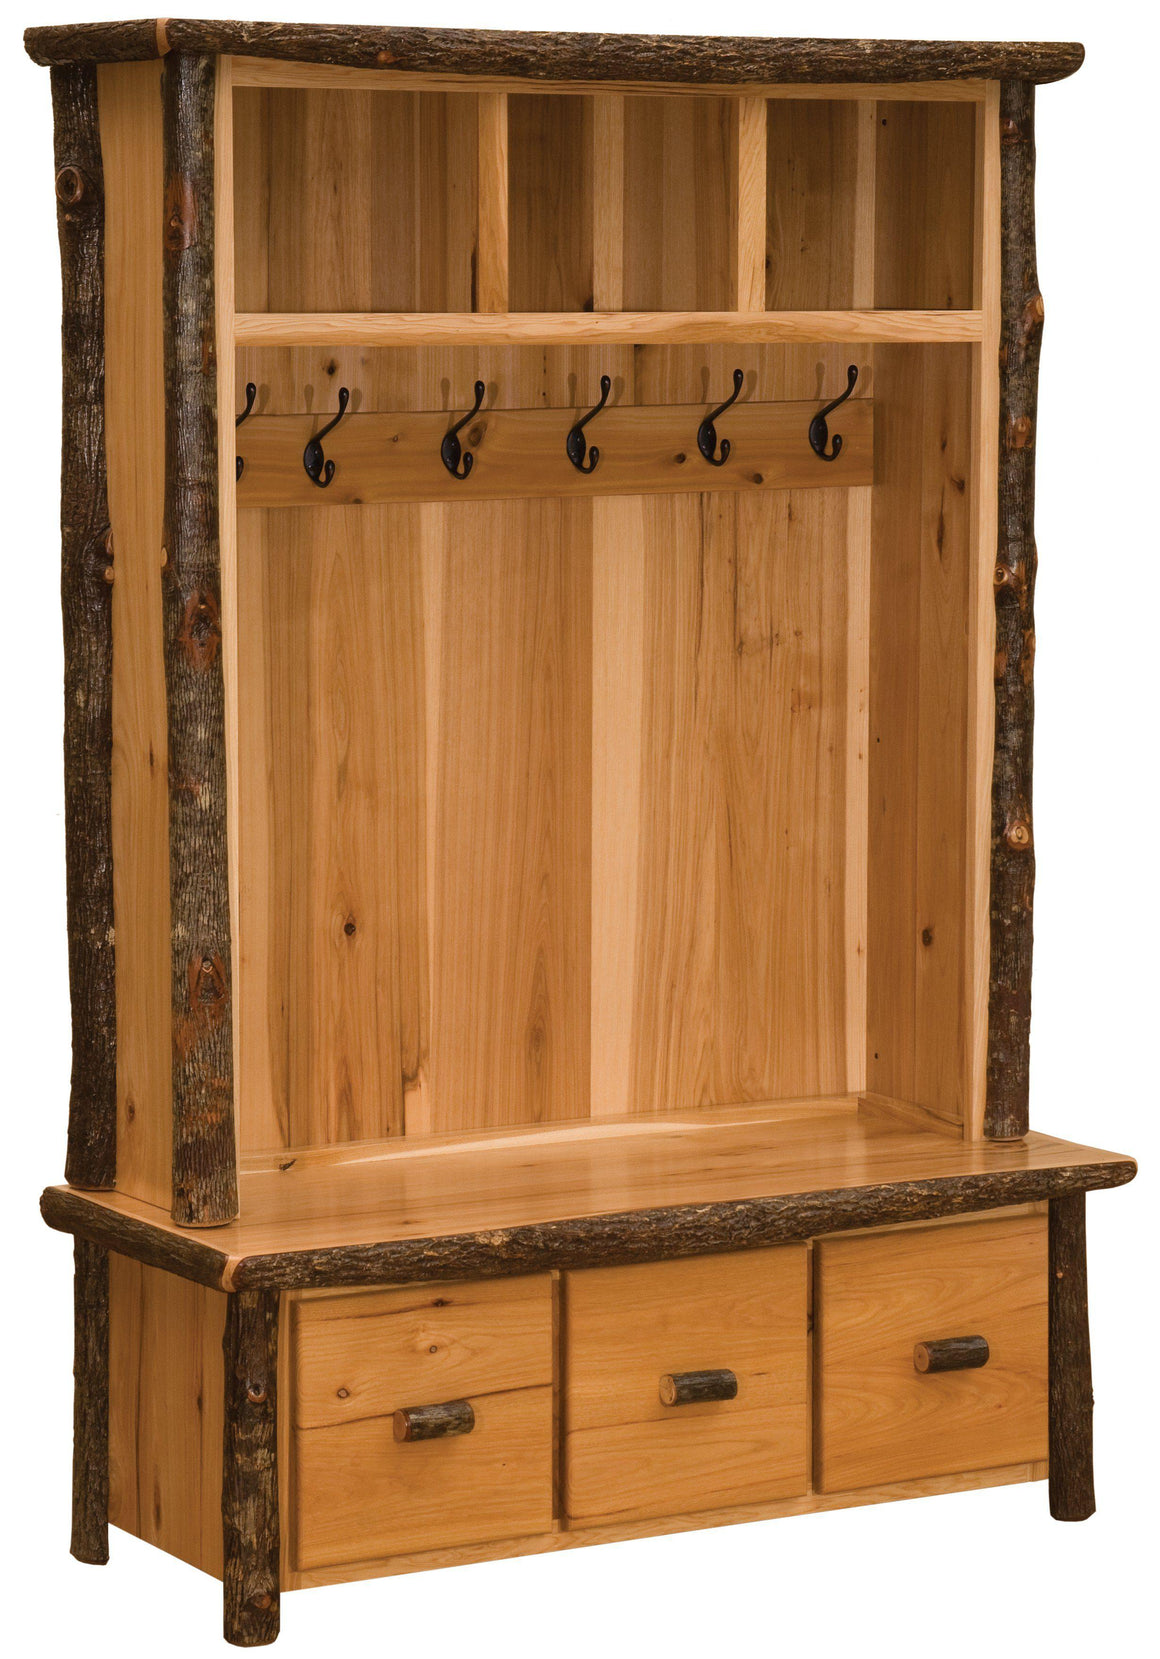 Hickory Log Entry Locker Unit - Mud Room Coat Rack Standard Finish-Rustic Deco Incorporated